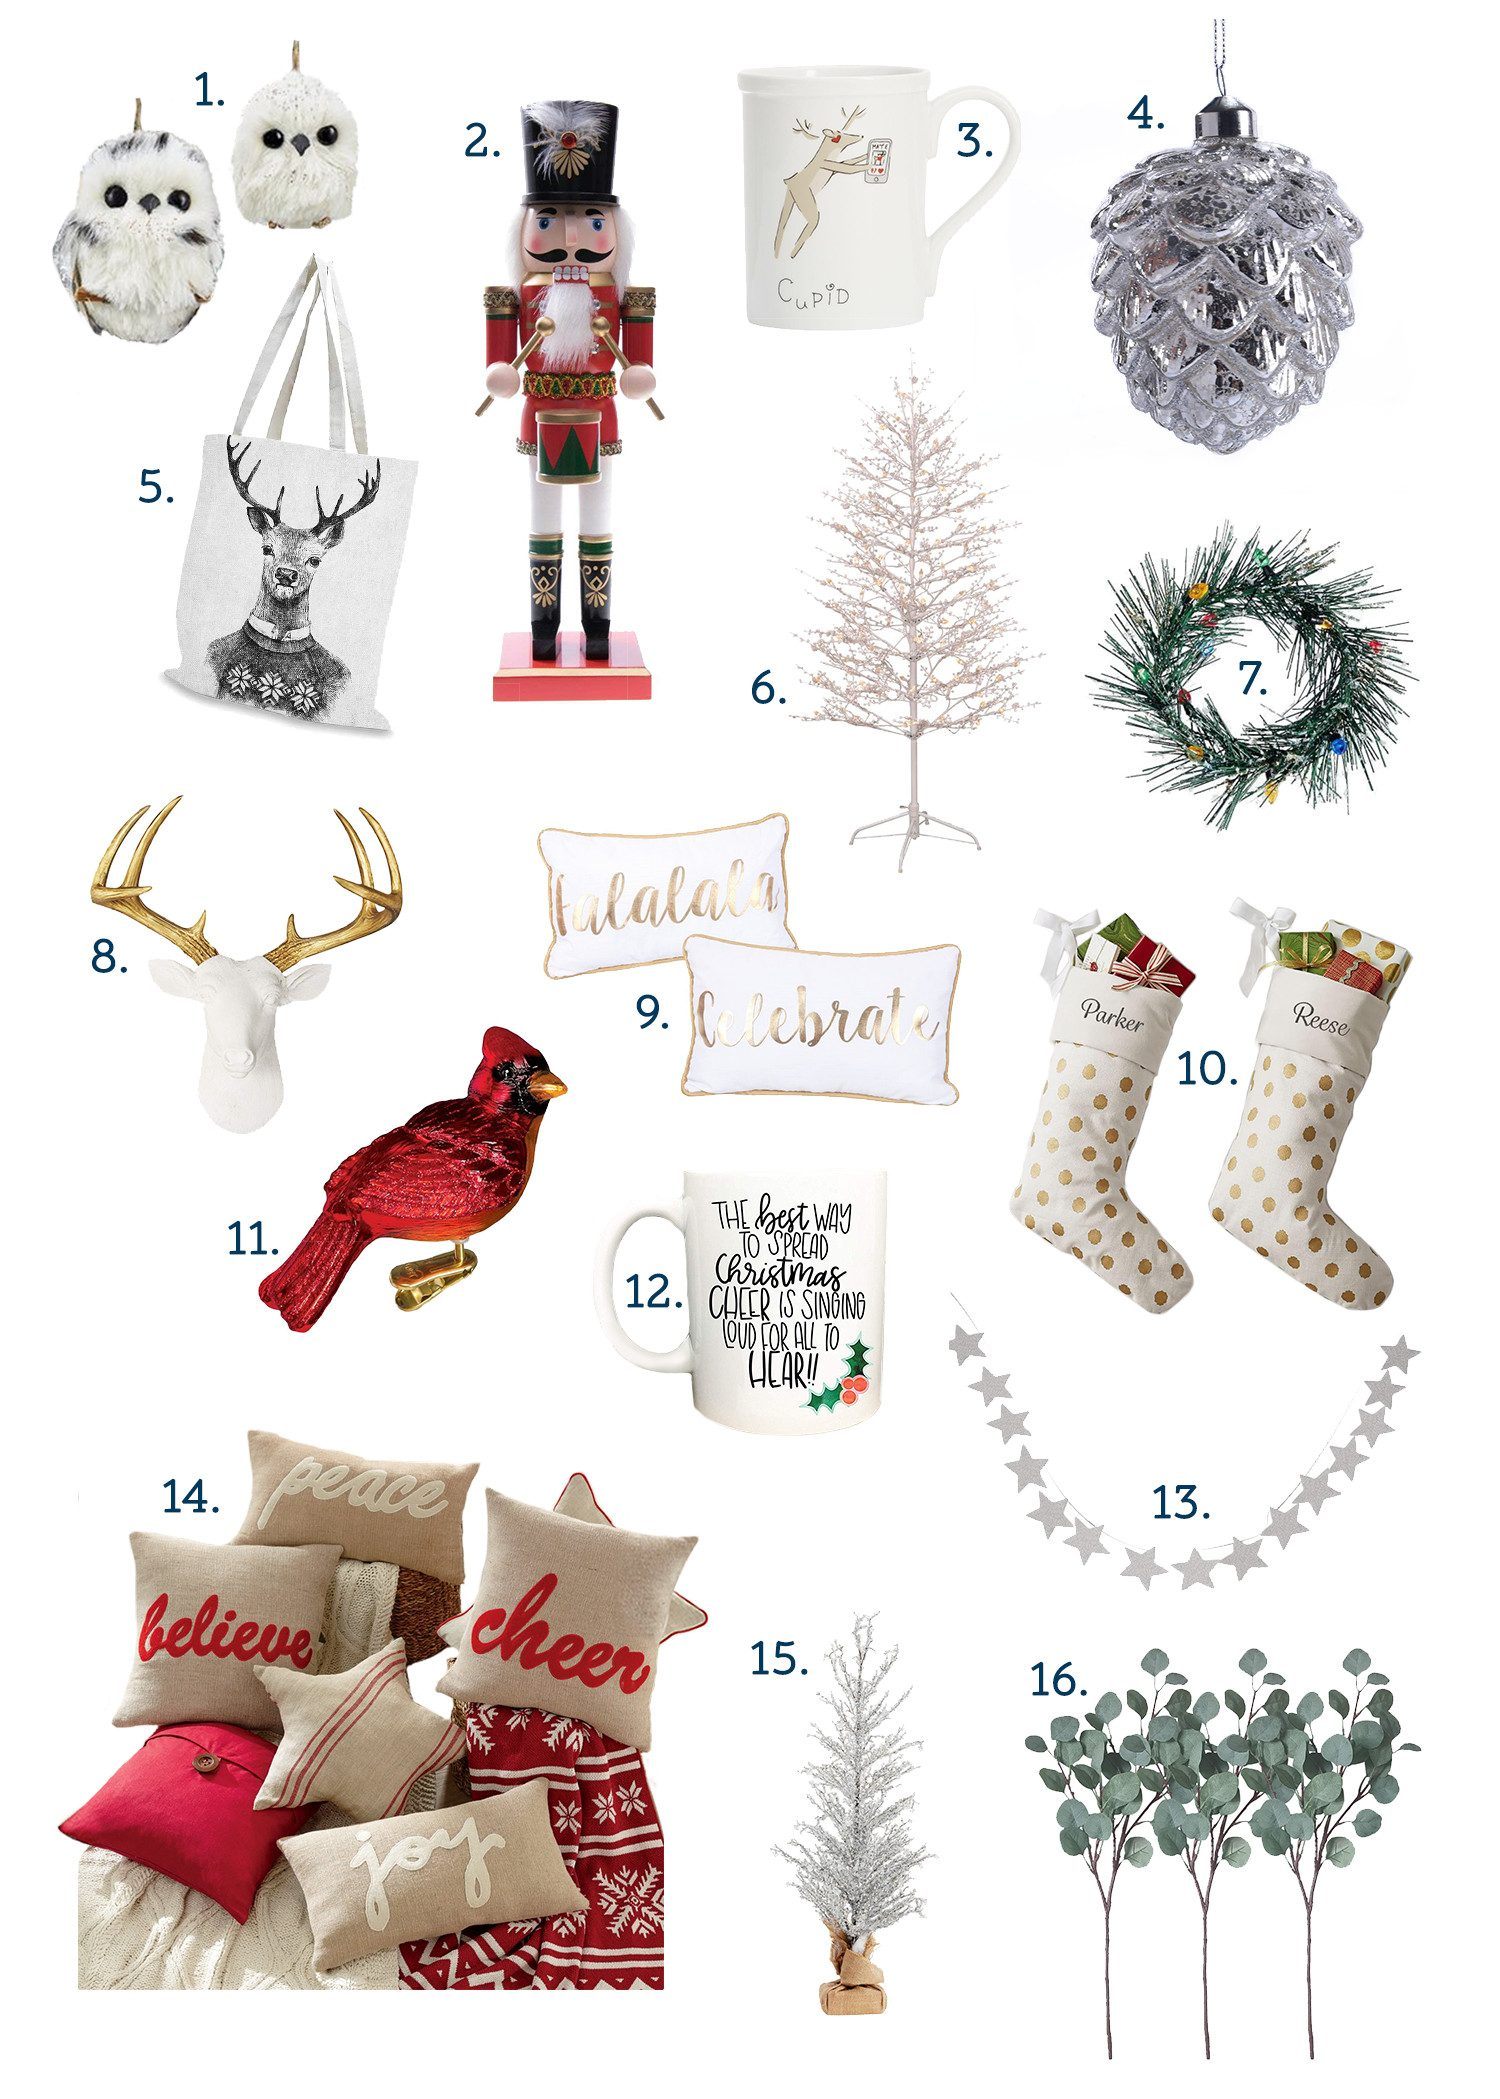 My Favourite December Things (For Christmas Decorating!)